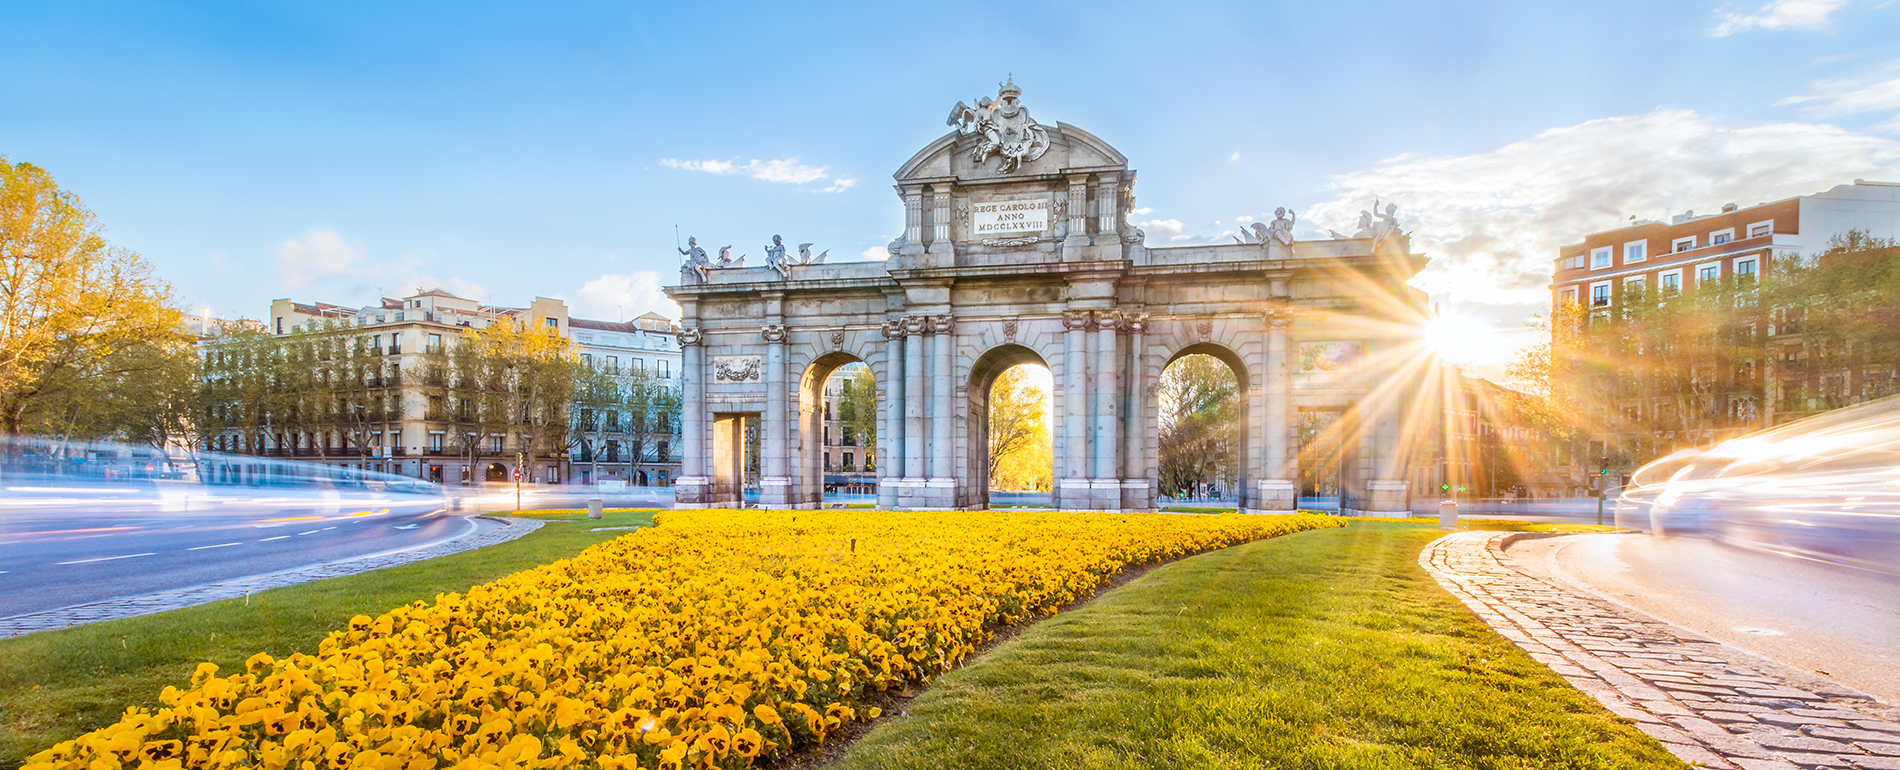 2020 ISPE Europe Annual Conference in Madrid, Spain 30 March - 1 April 2020